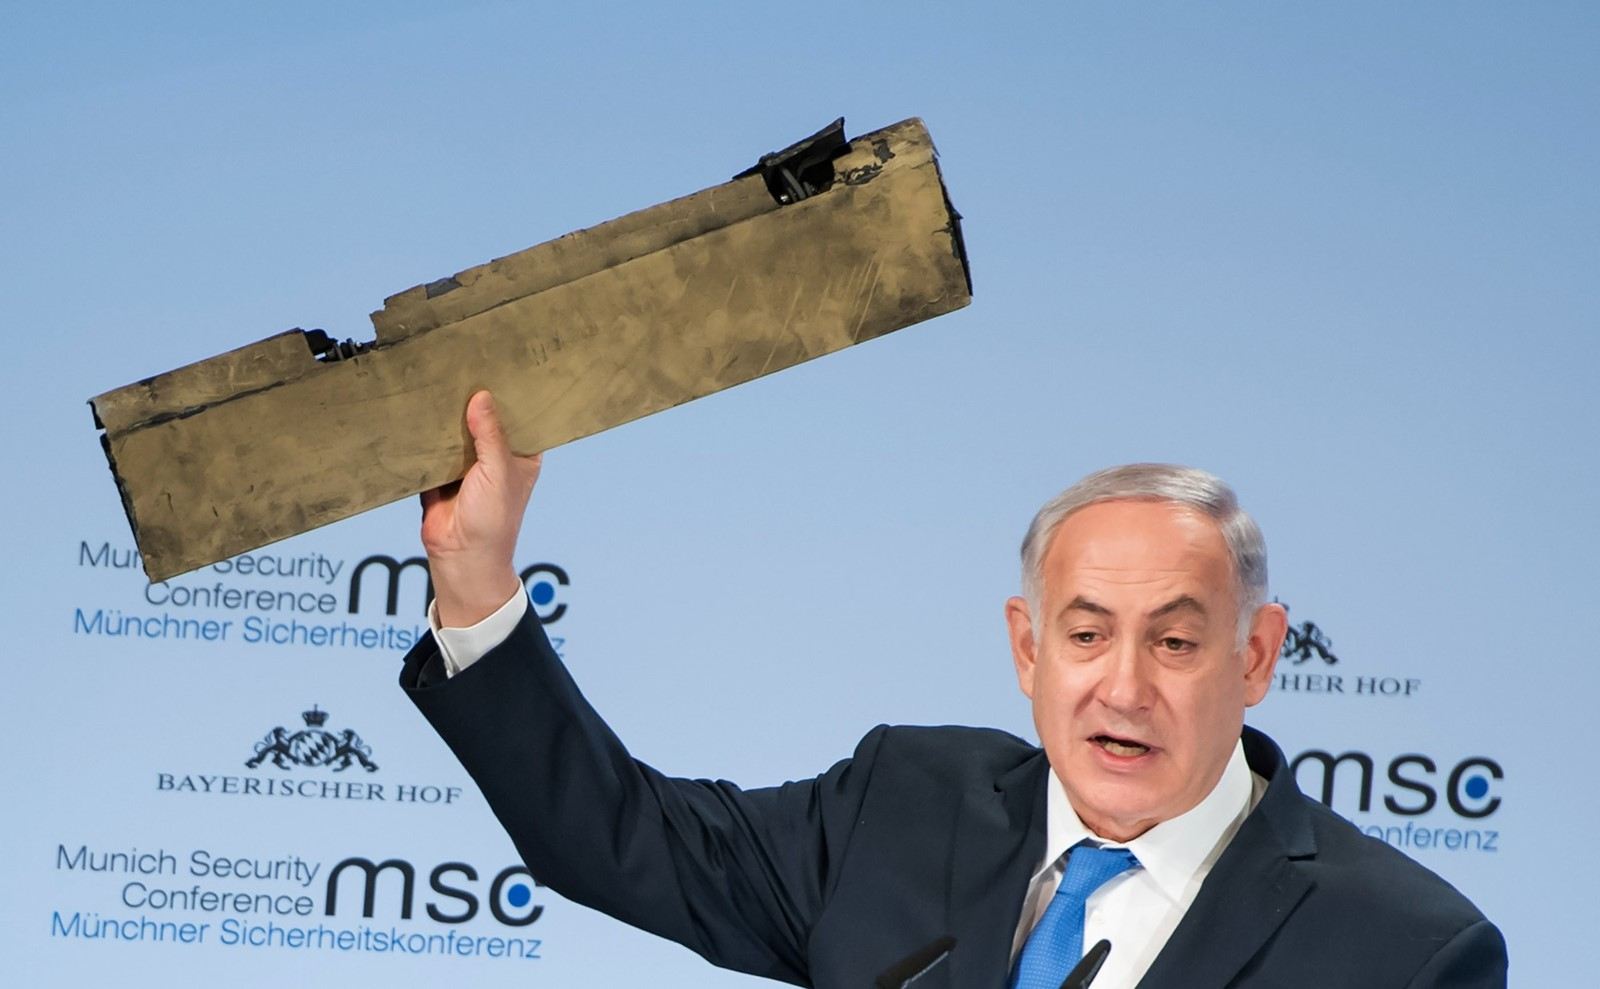 In Munich, Netanyahu holds what he said was part of an Iranian drone shot down in Israeli airspace. — Photograph: Lennart Preiss/Agence France-Presse/Getty Images.